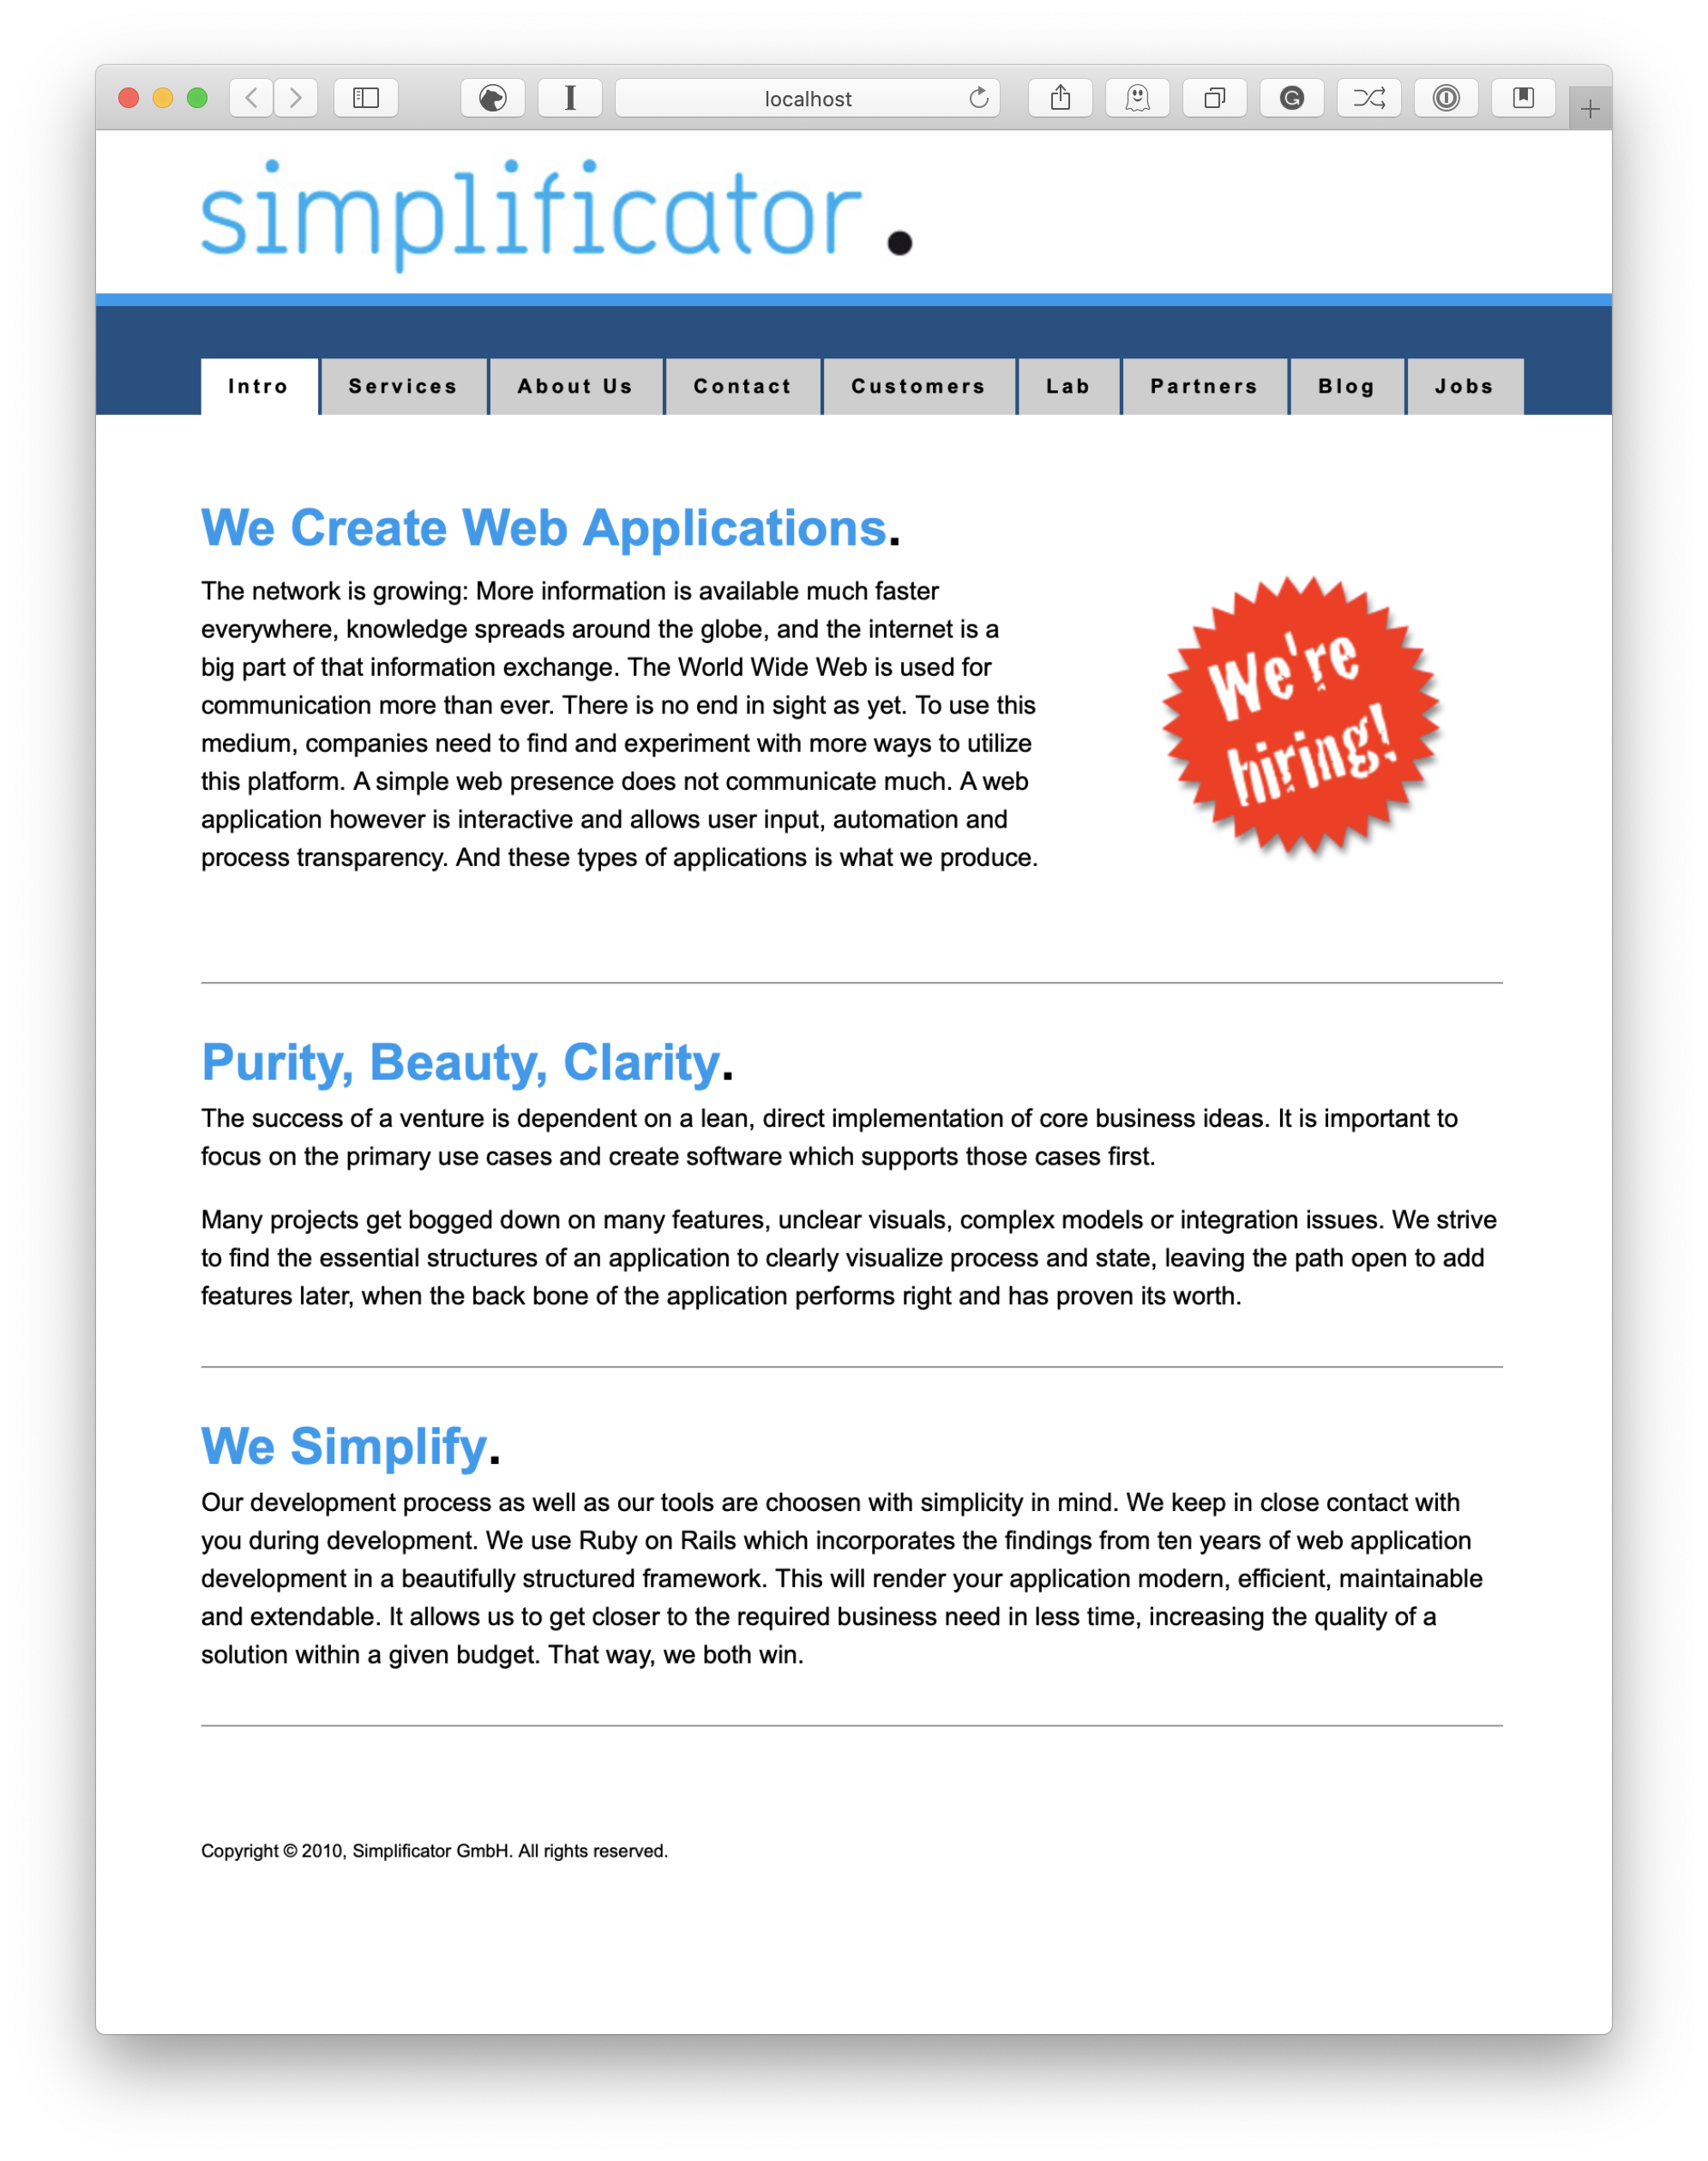 Simplificator Front Page in 2010